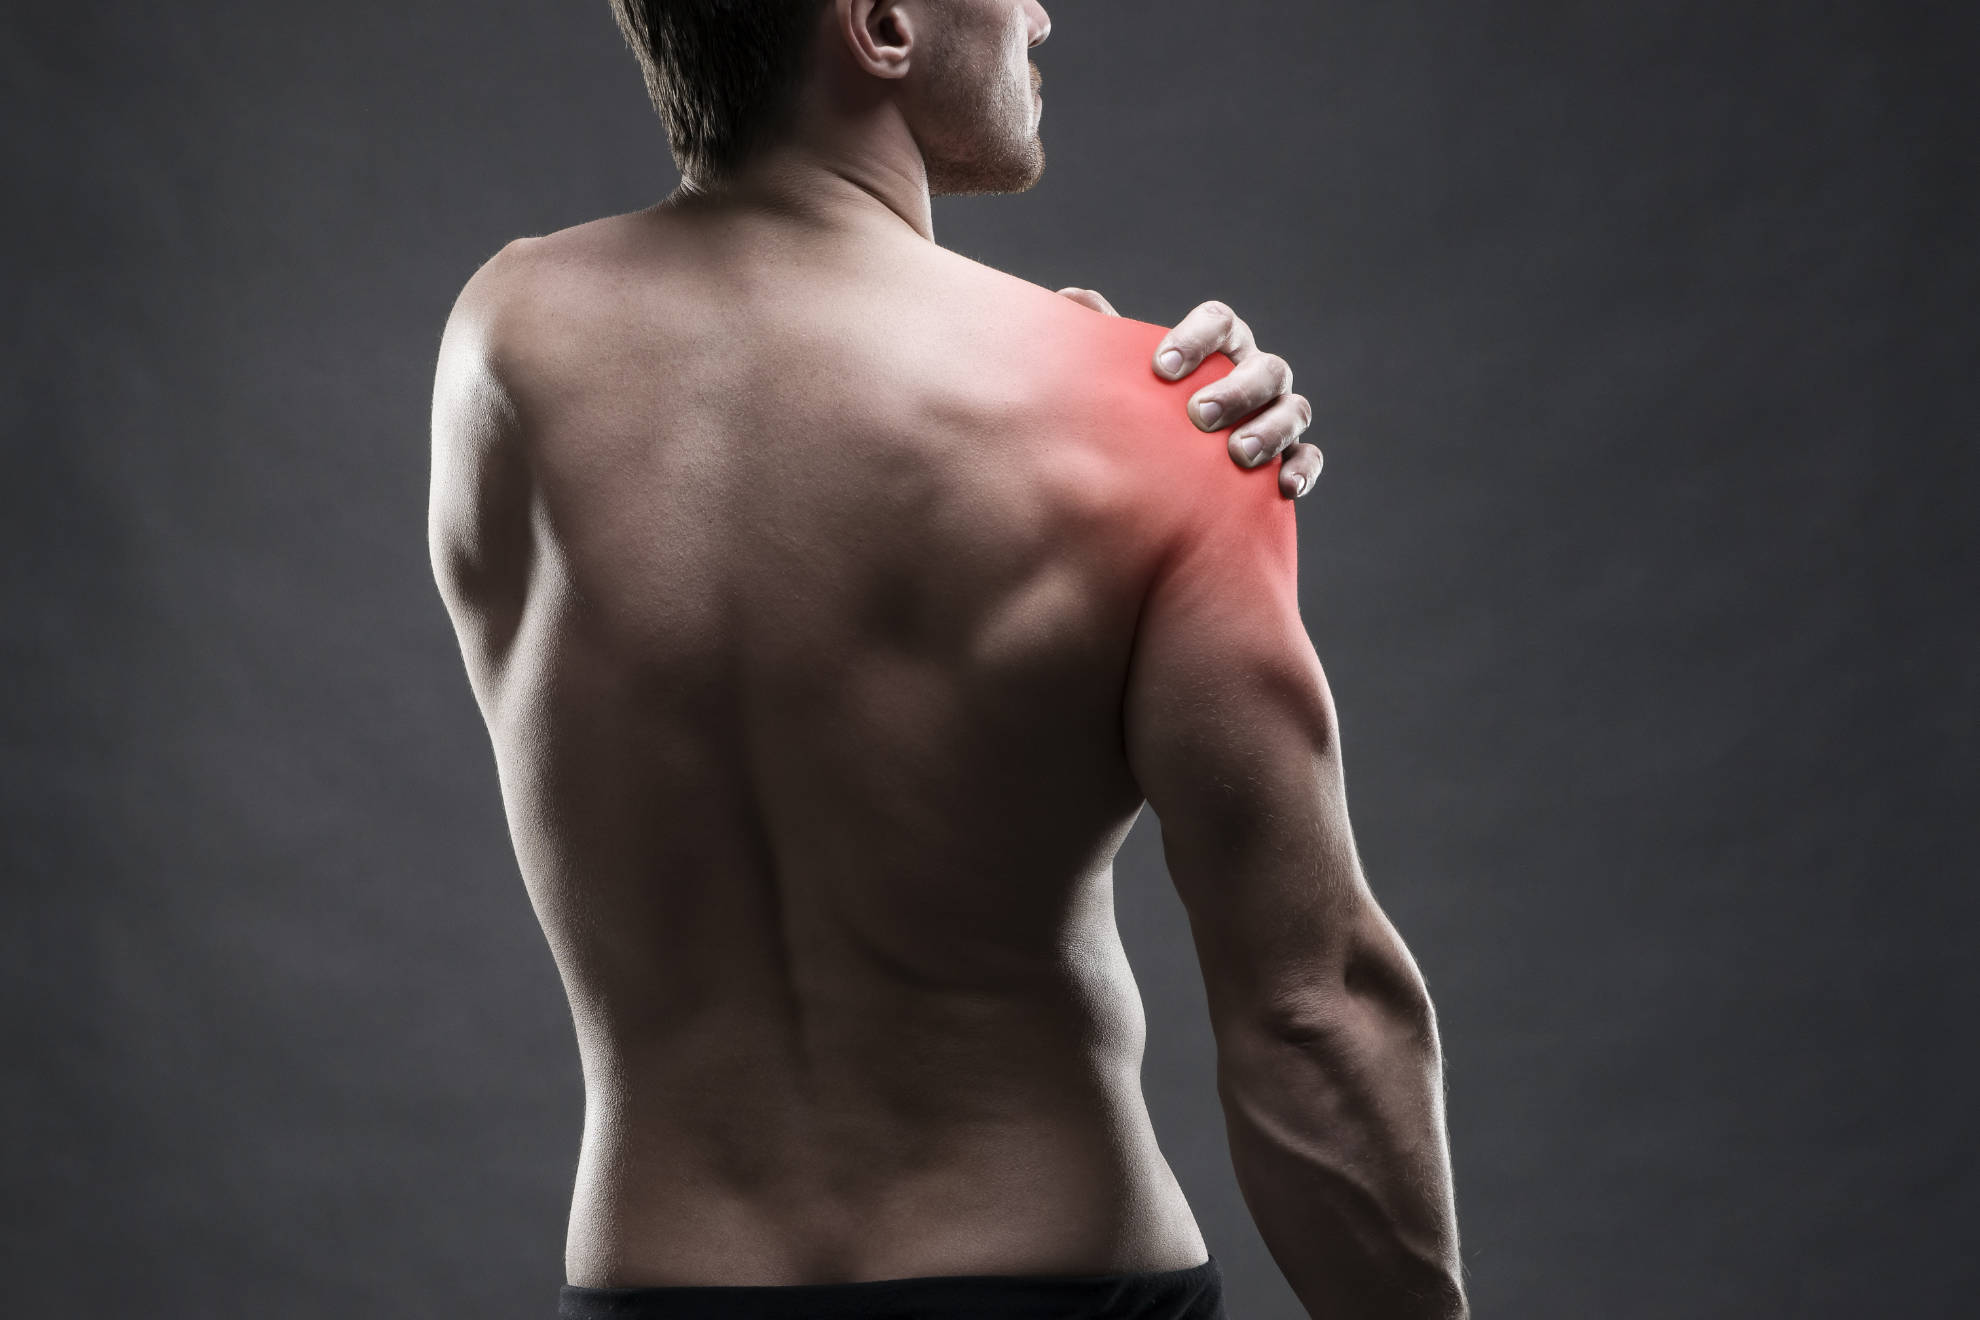 Arm Pain and Injuries Treatment in Morgan Hill